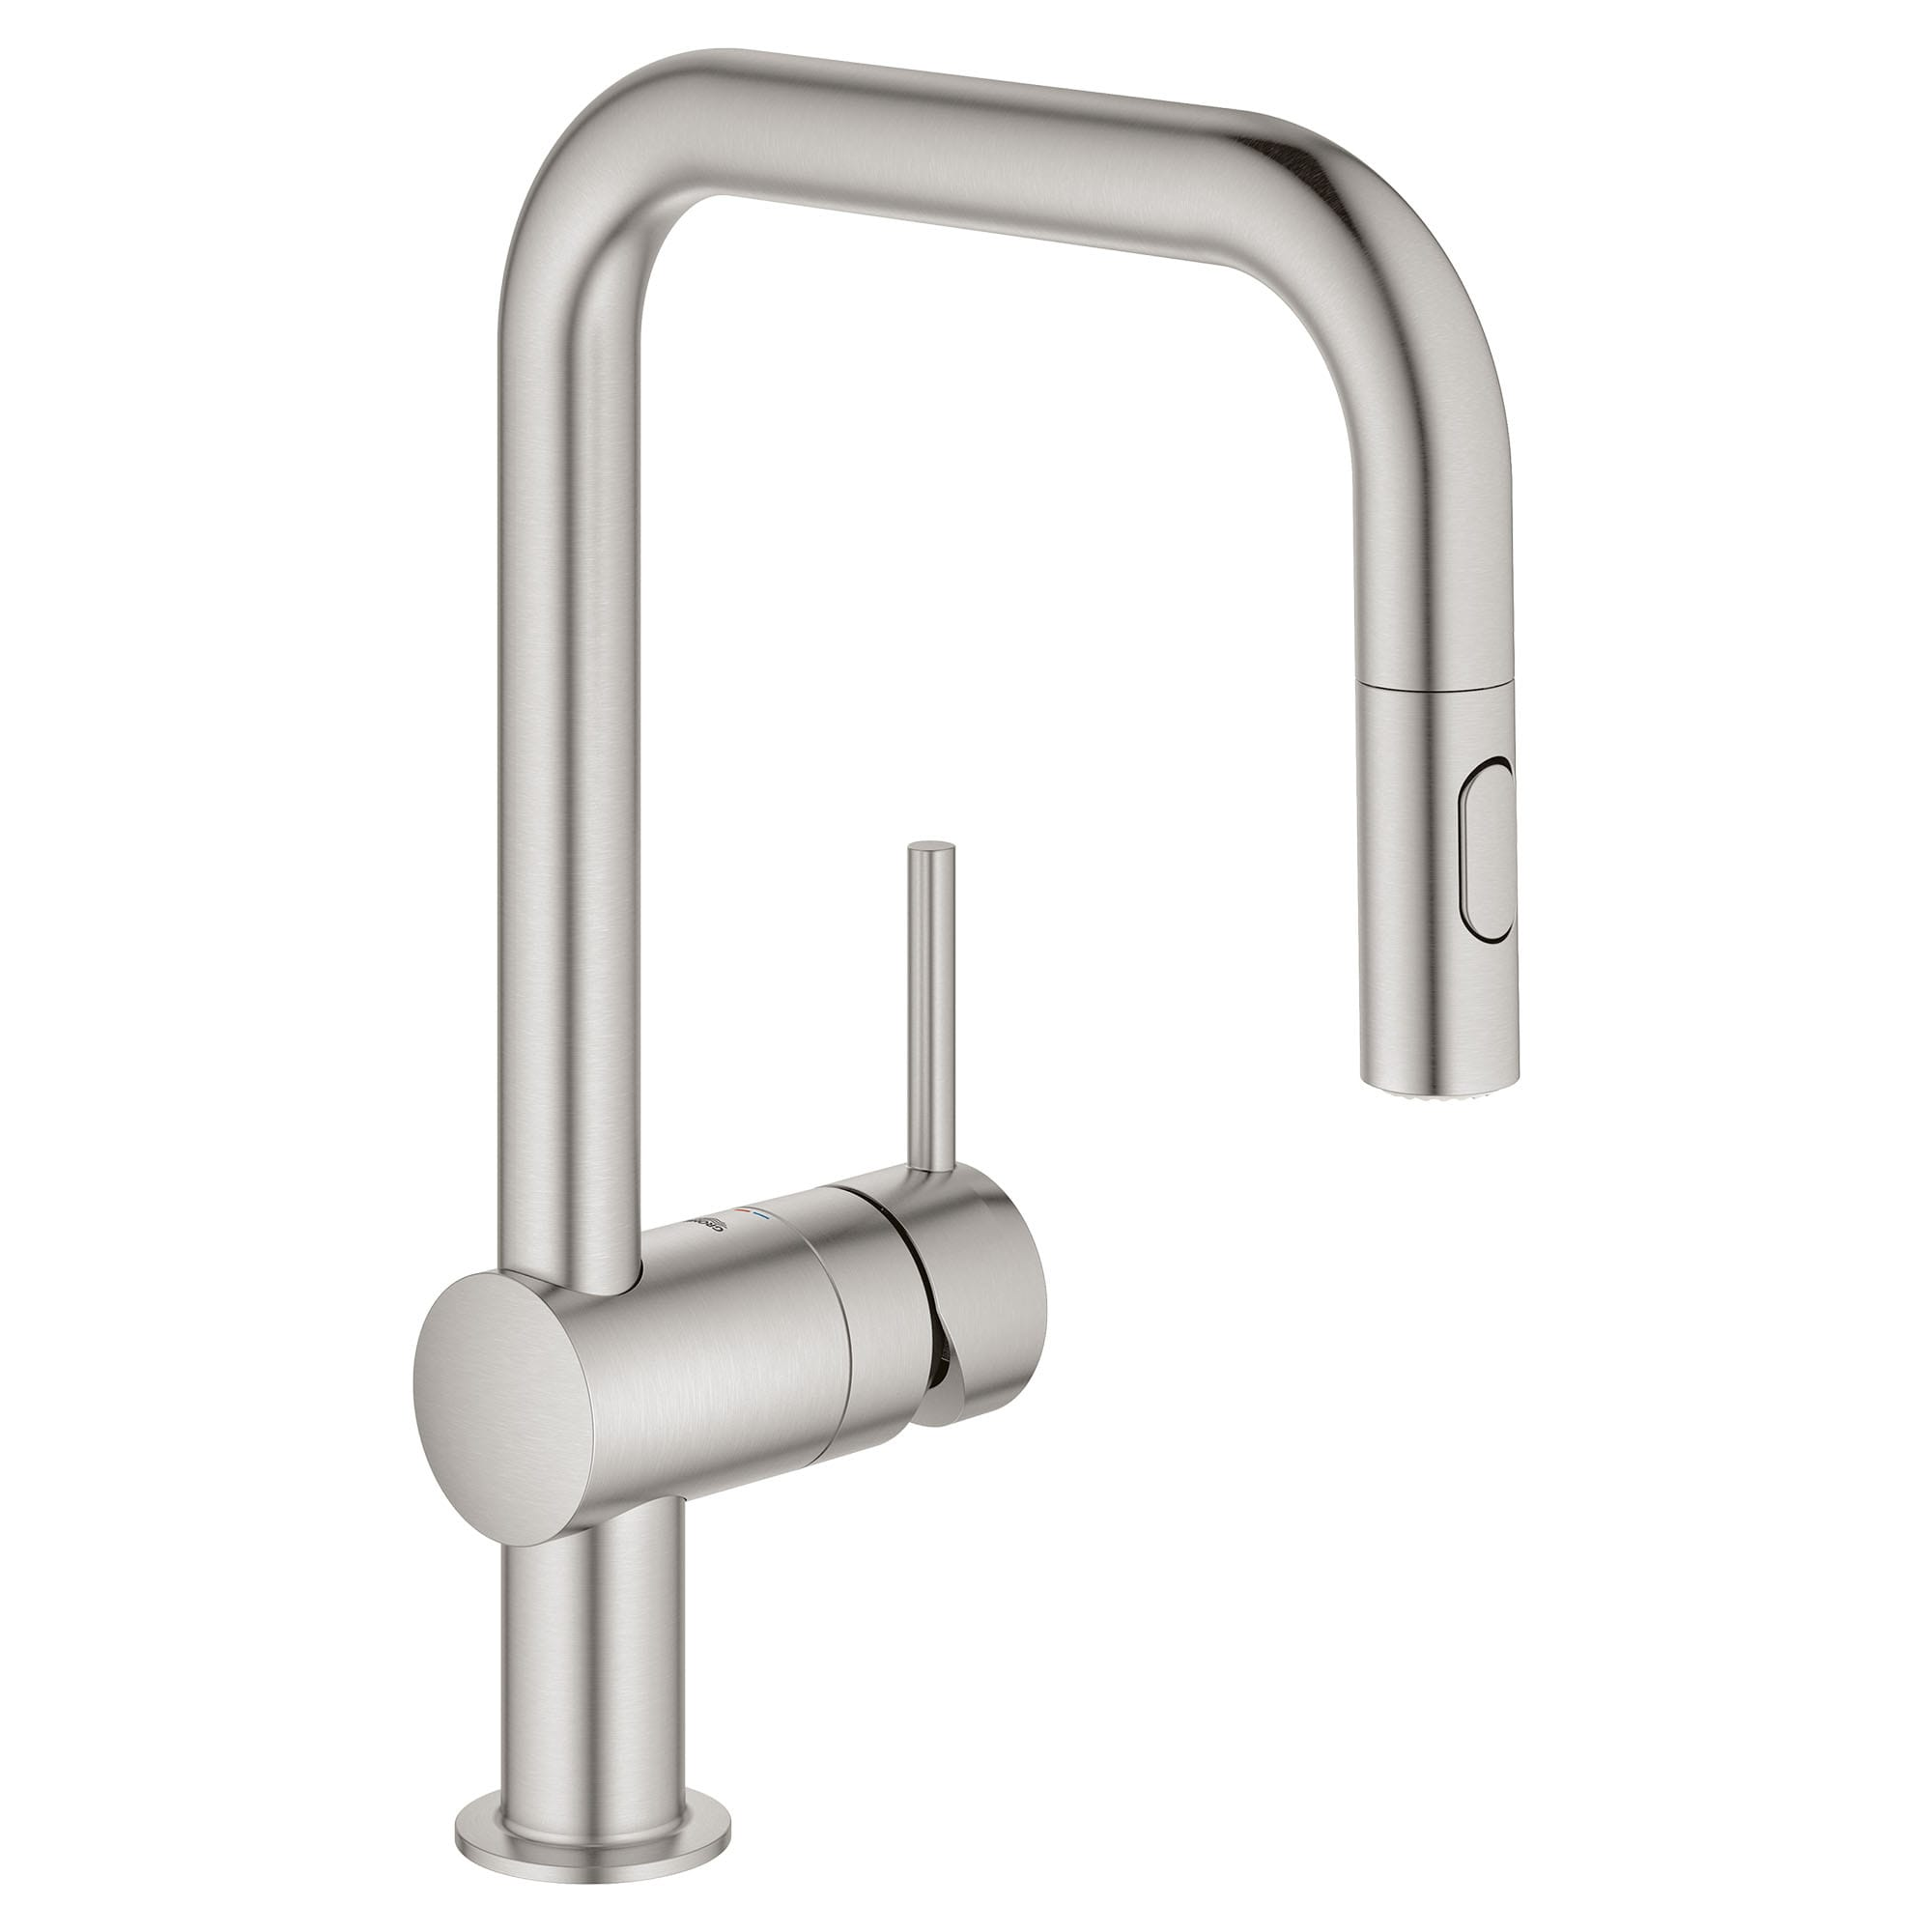 Grohe 32319dc3 Supersteel Minta 1 75 Gpm Single Hole Pull Down Kitchen Faucet Faucetdirect Com